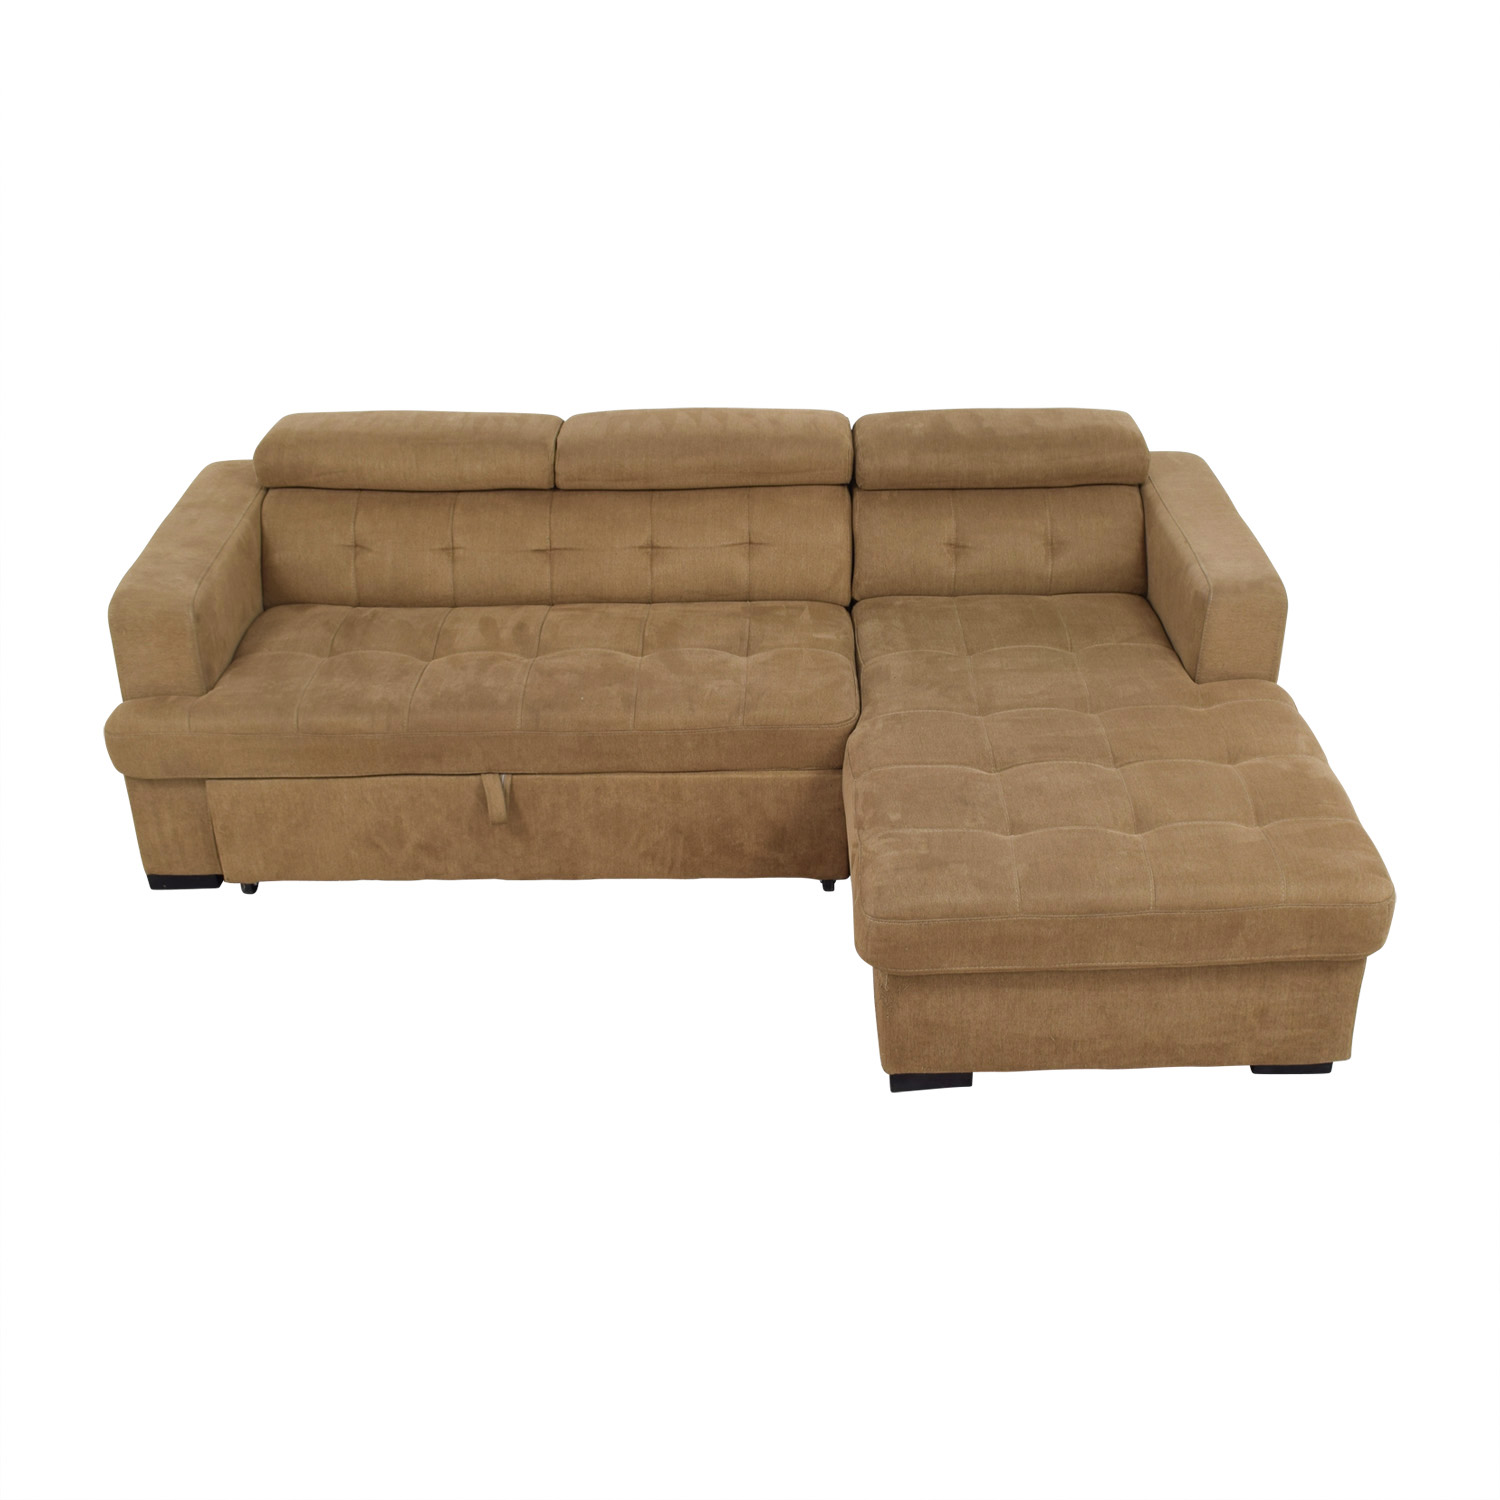 shop Bobs Furniture Brown Pull Out with Chaise Storage Bobs Furniture